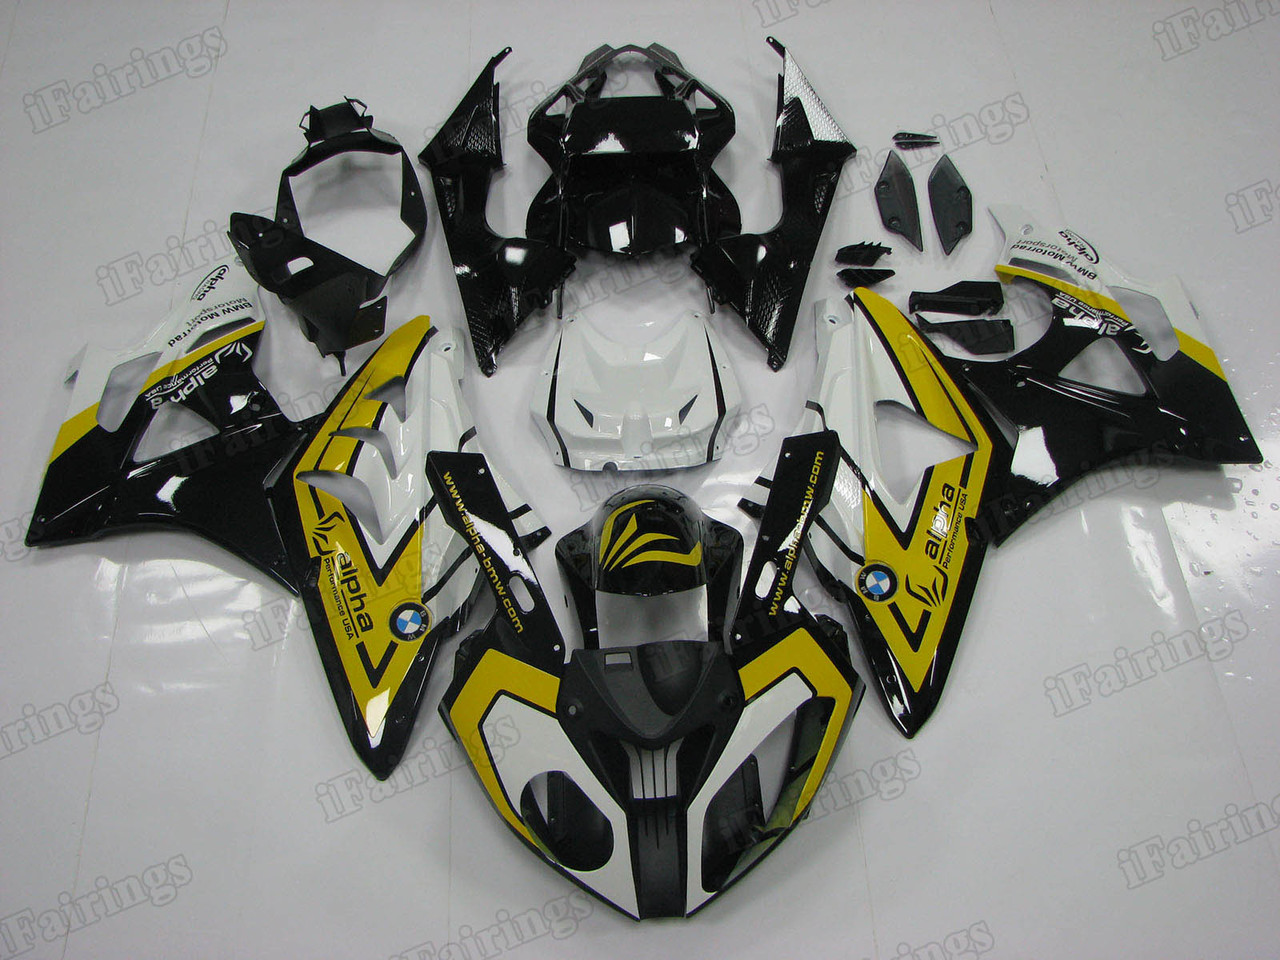 2009 2010 2011 2012 2013 2014 BMW S1000RR black and yellow fairing kit.